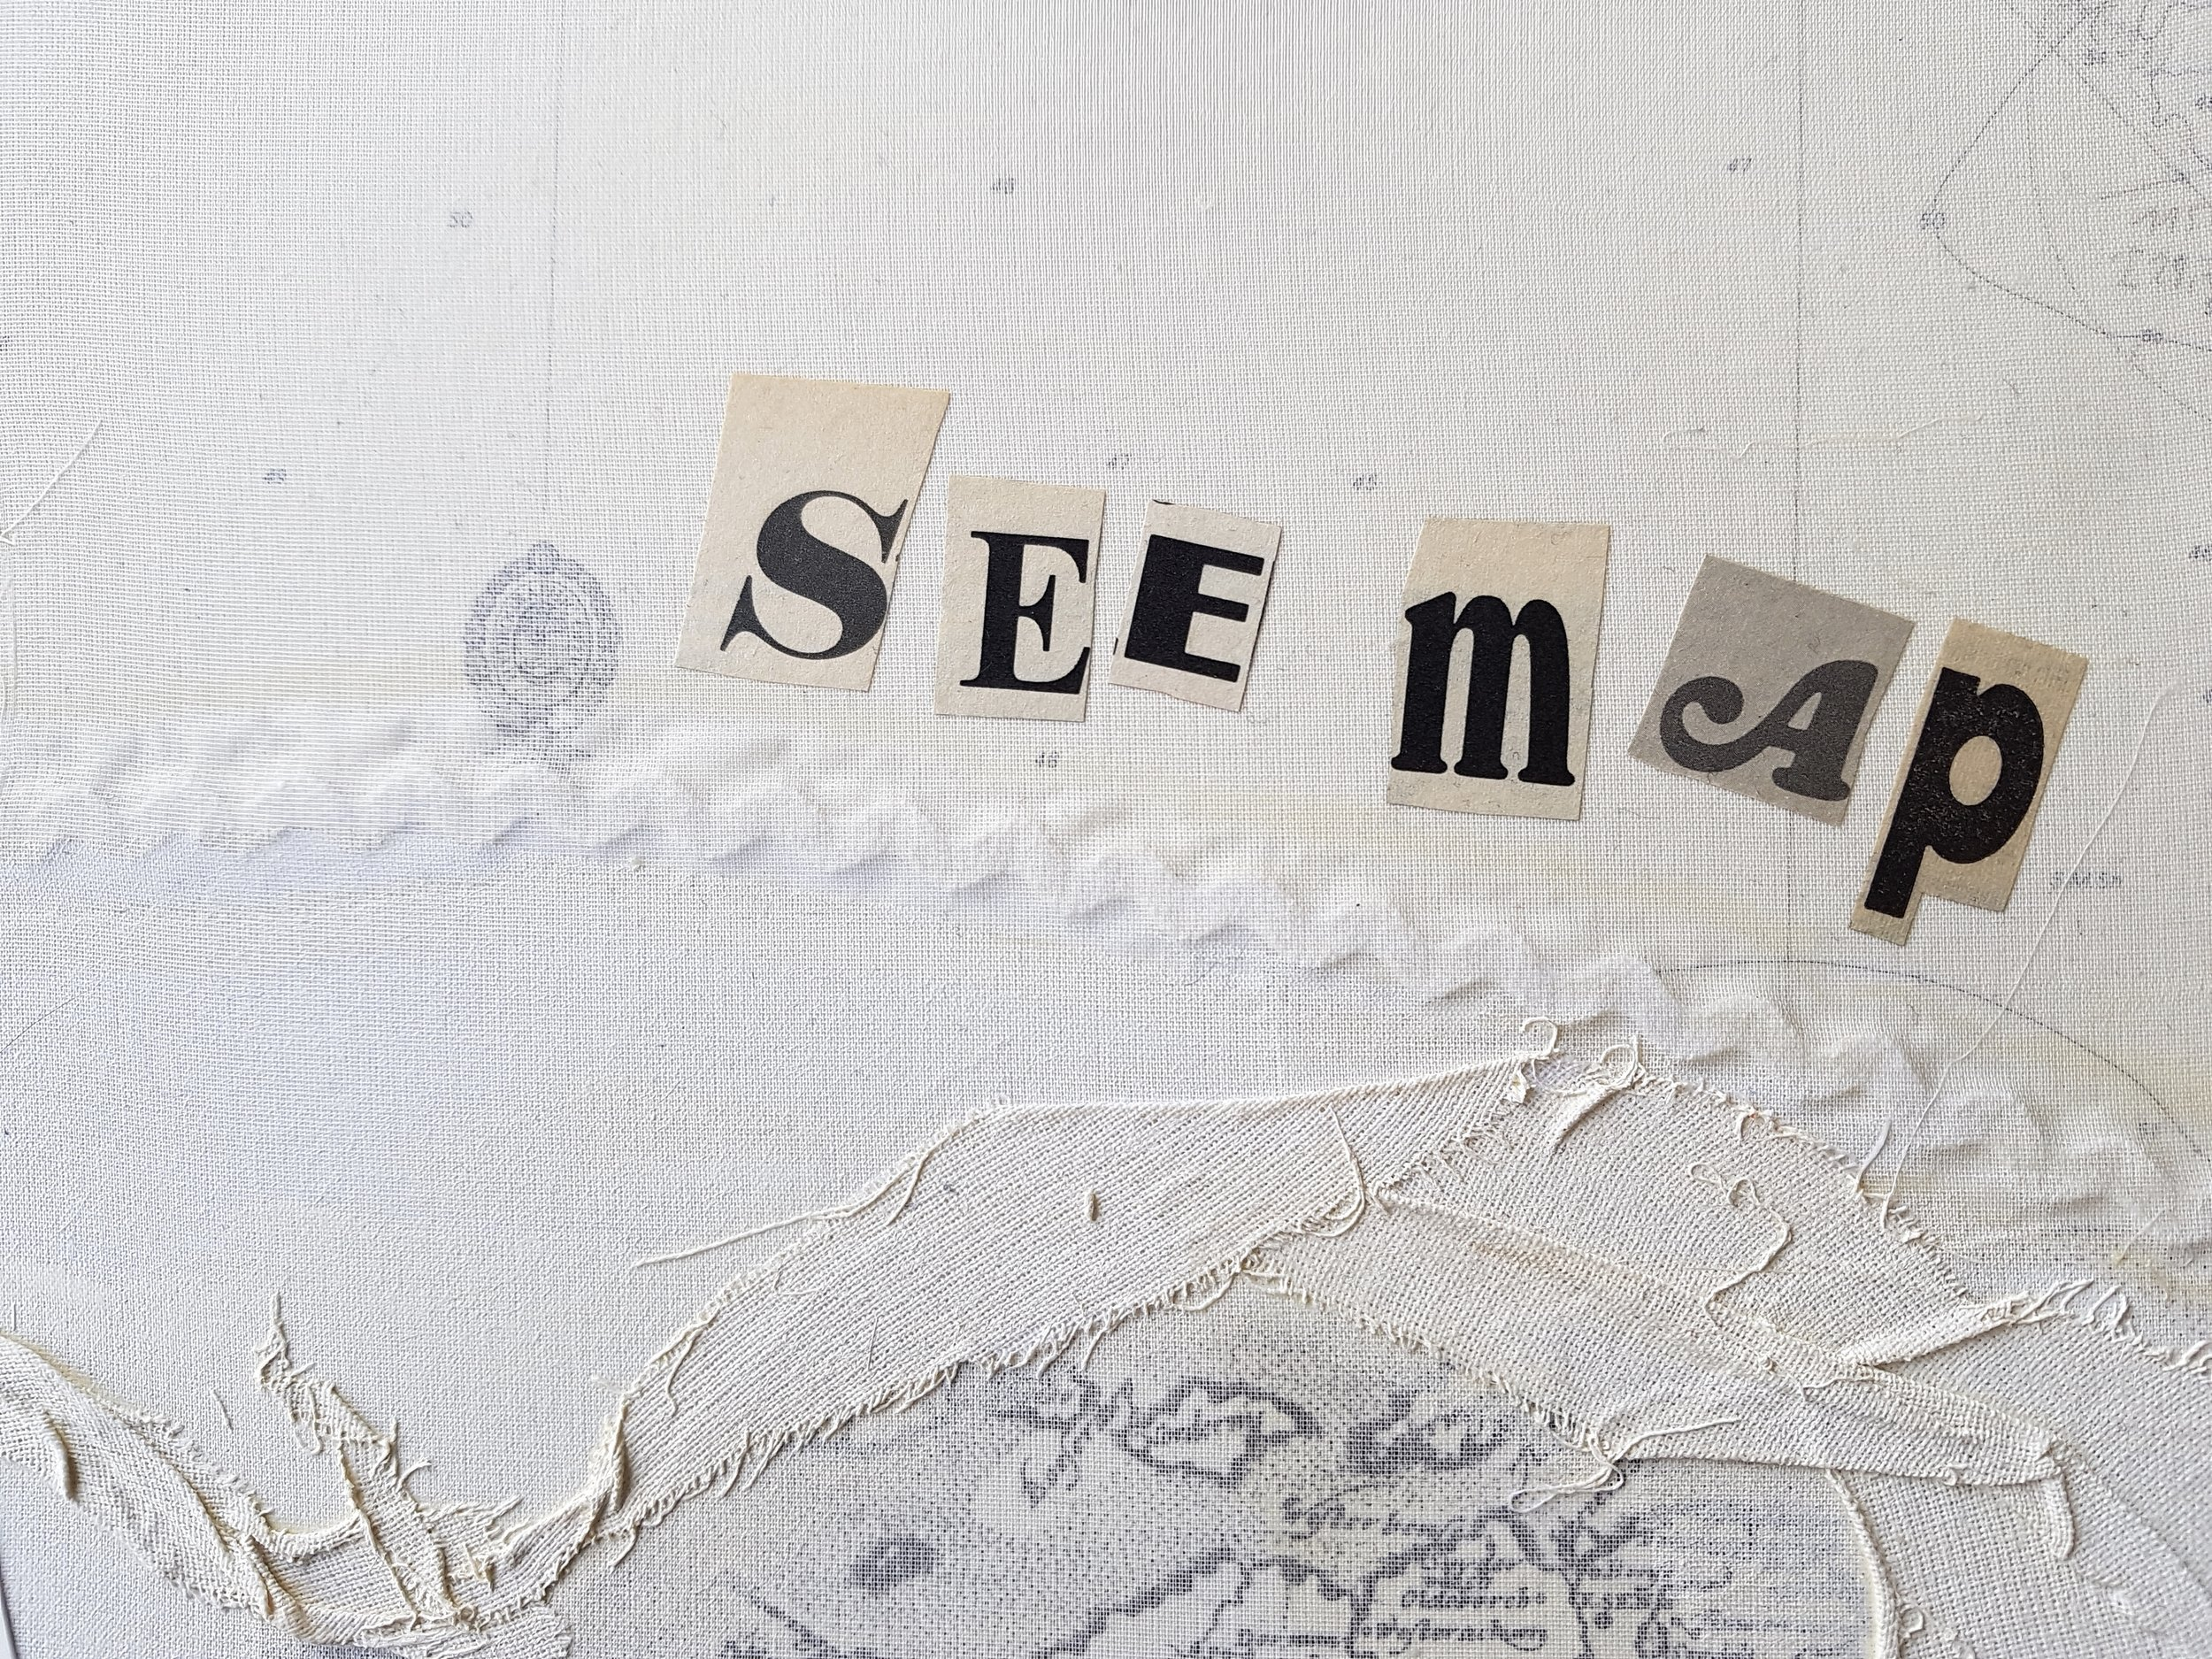 karin_schaefer_collage_art_seamaps_seemap_detail.jpg